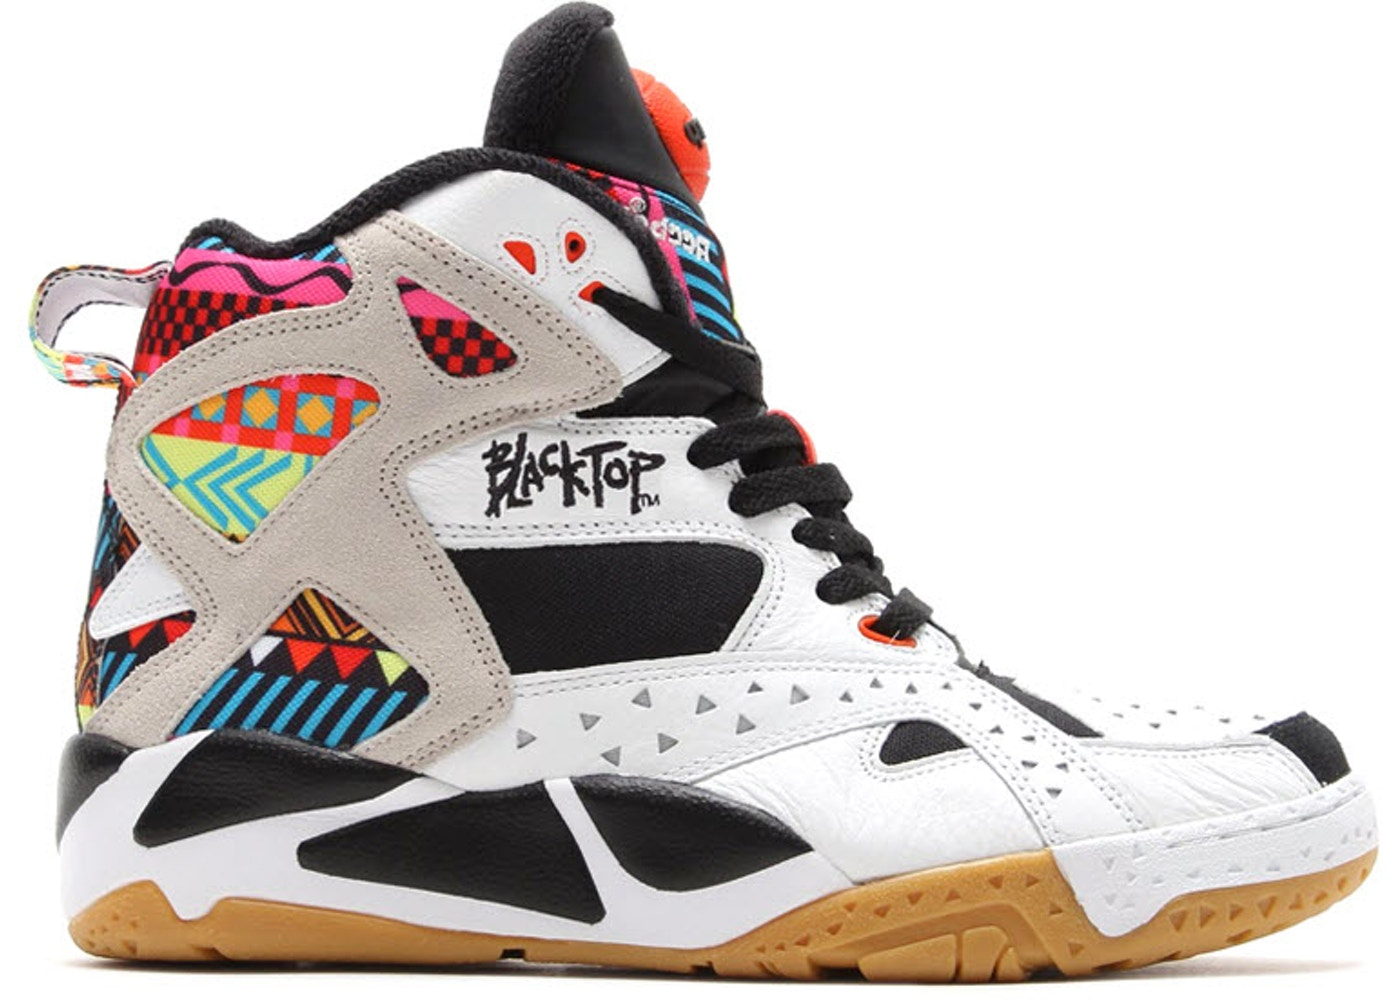 80e3c0bcebb Reebok Blacktop Battleground Tribal Pump - M43284